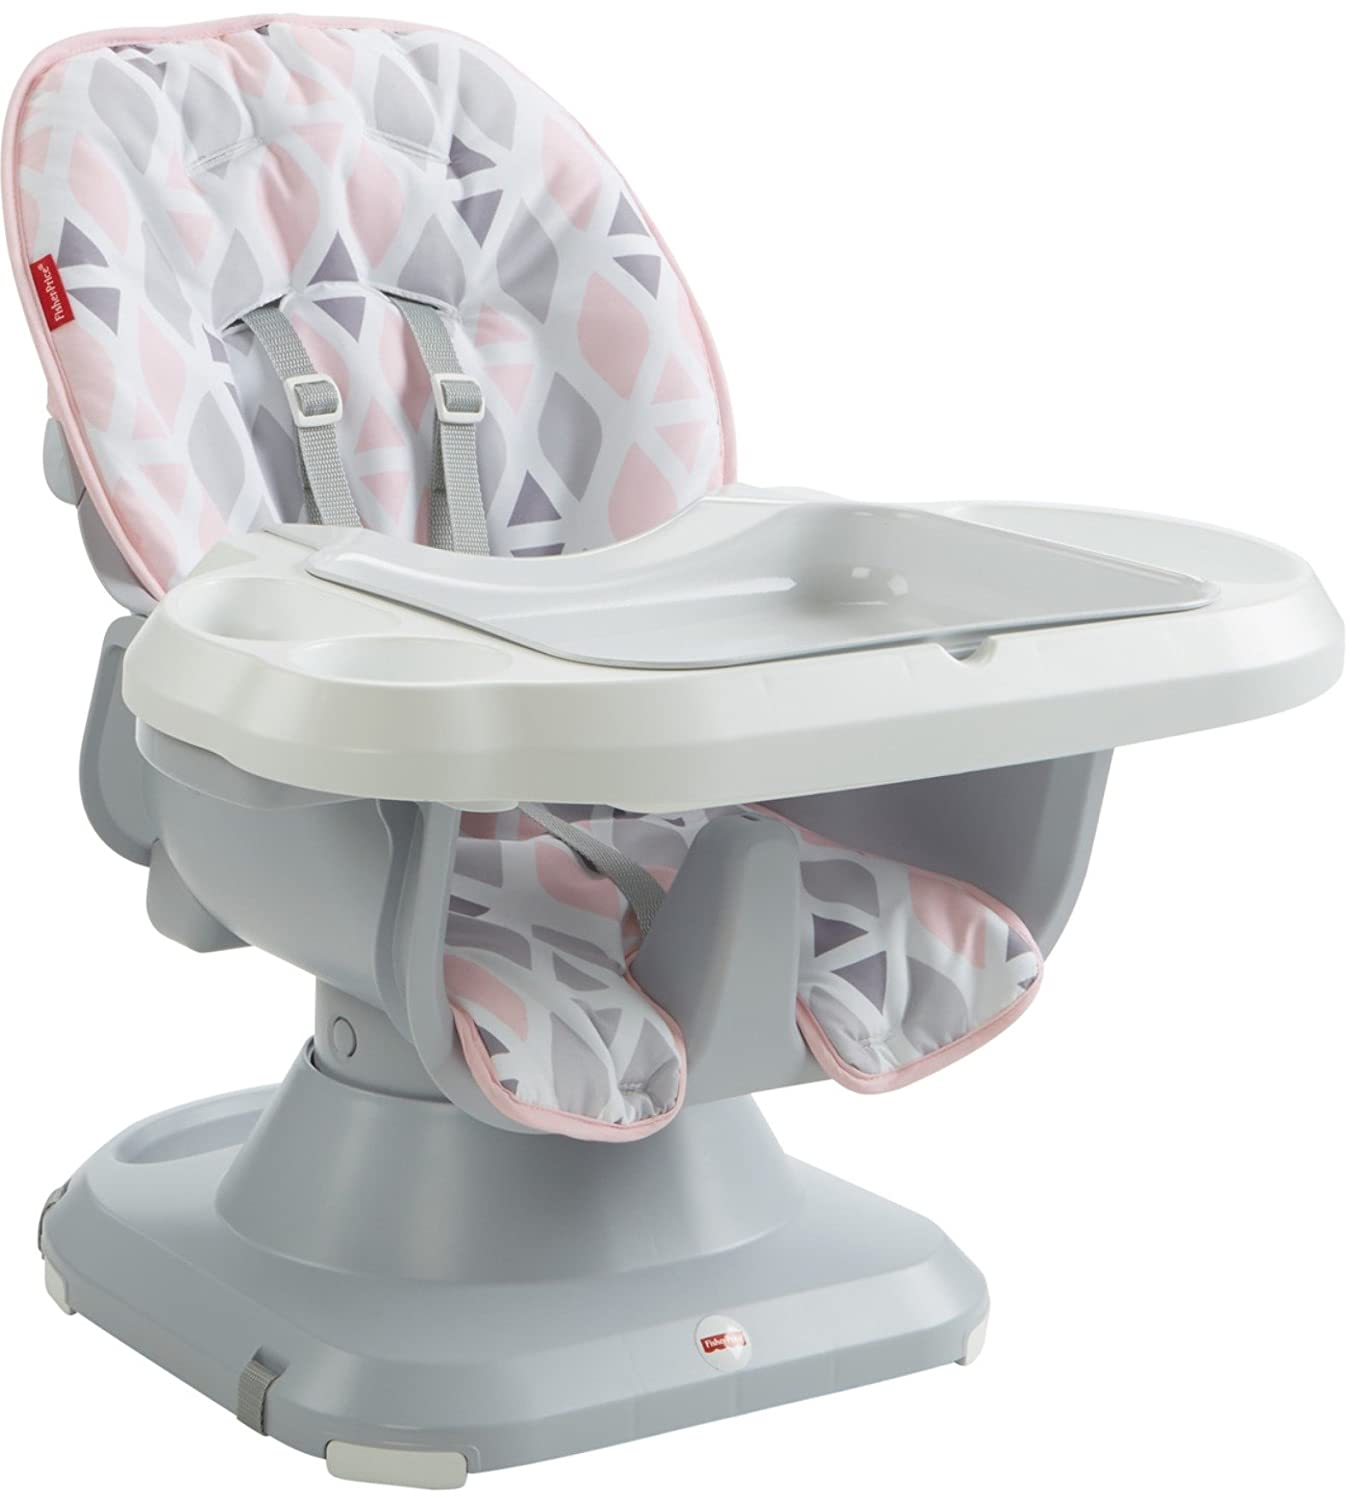 Fisher-Price SpaceSaver High Chair, Multicolor FTL90